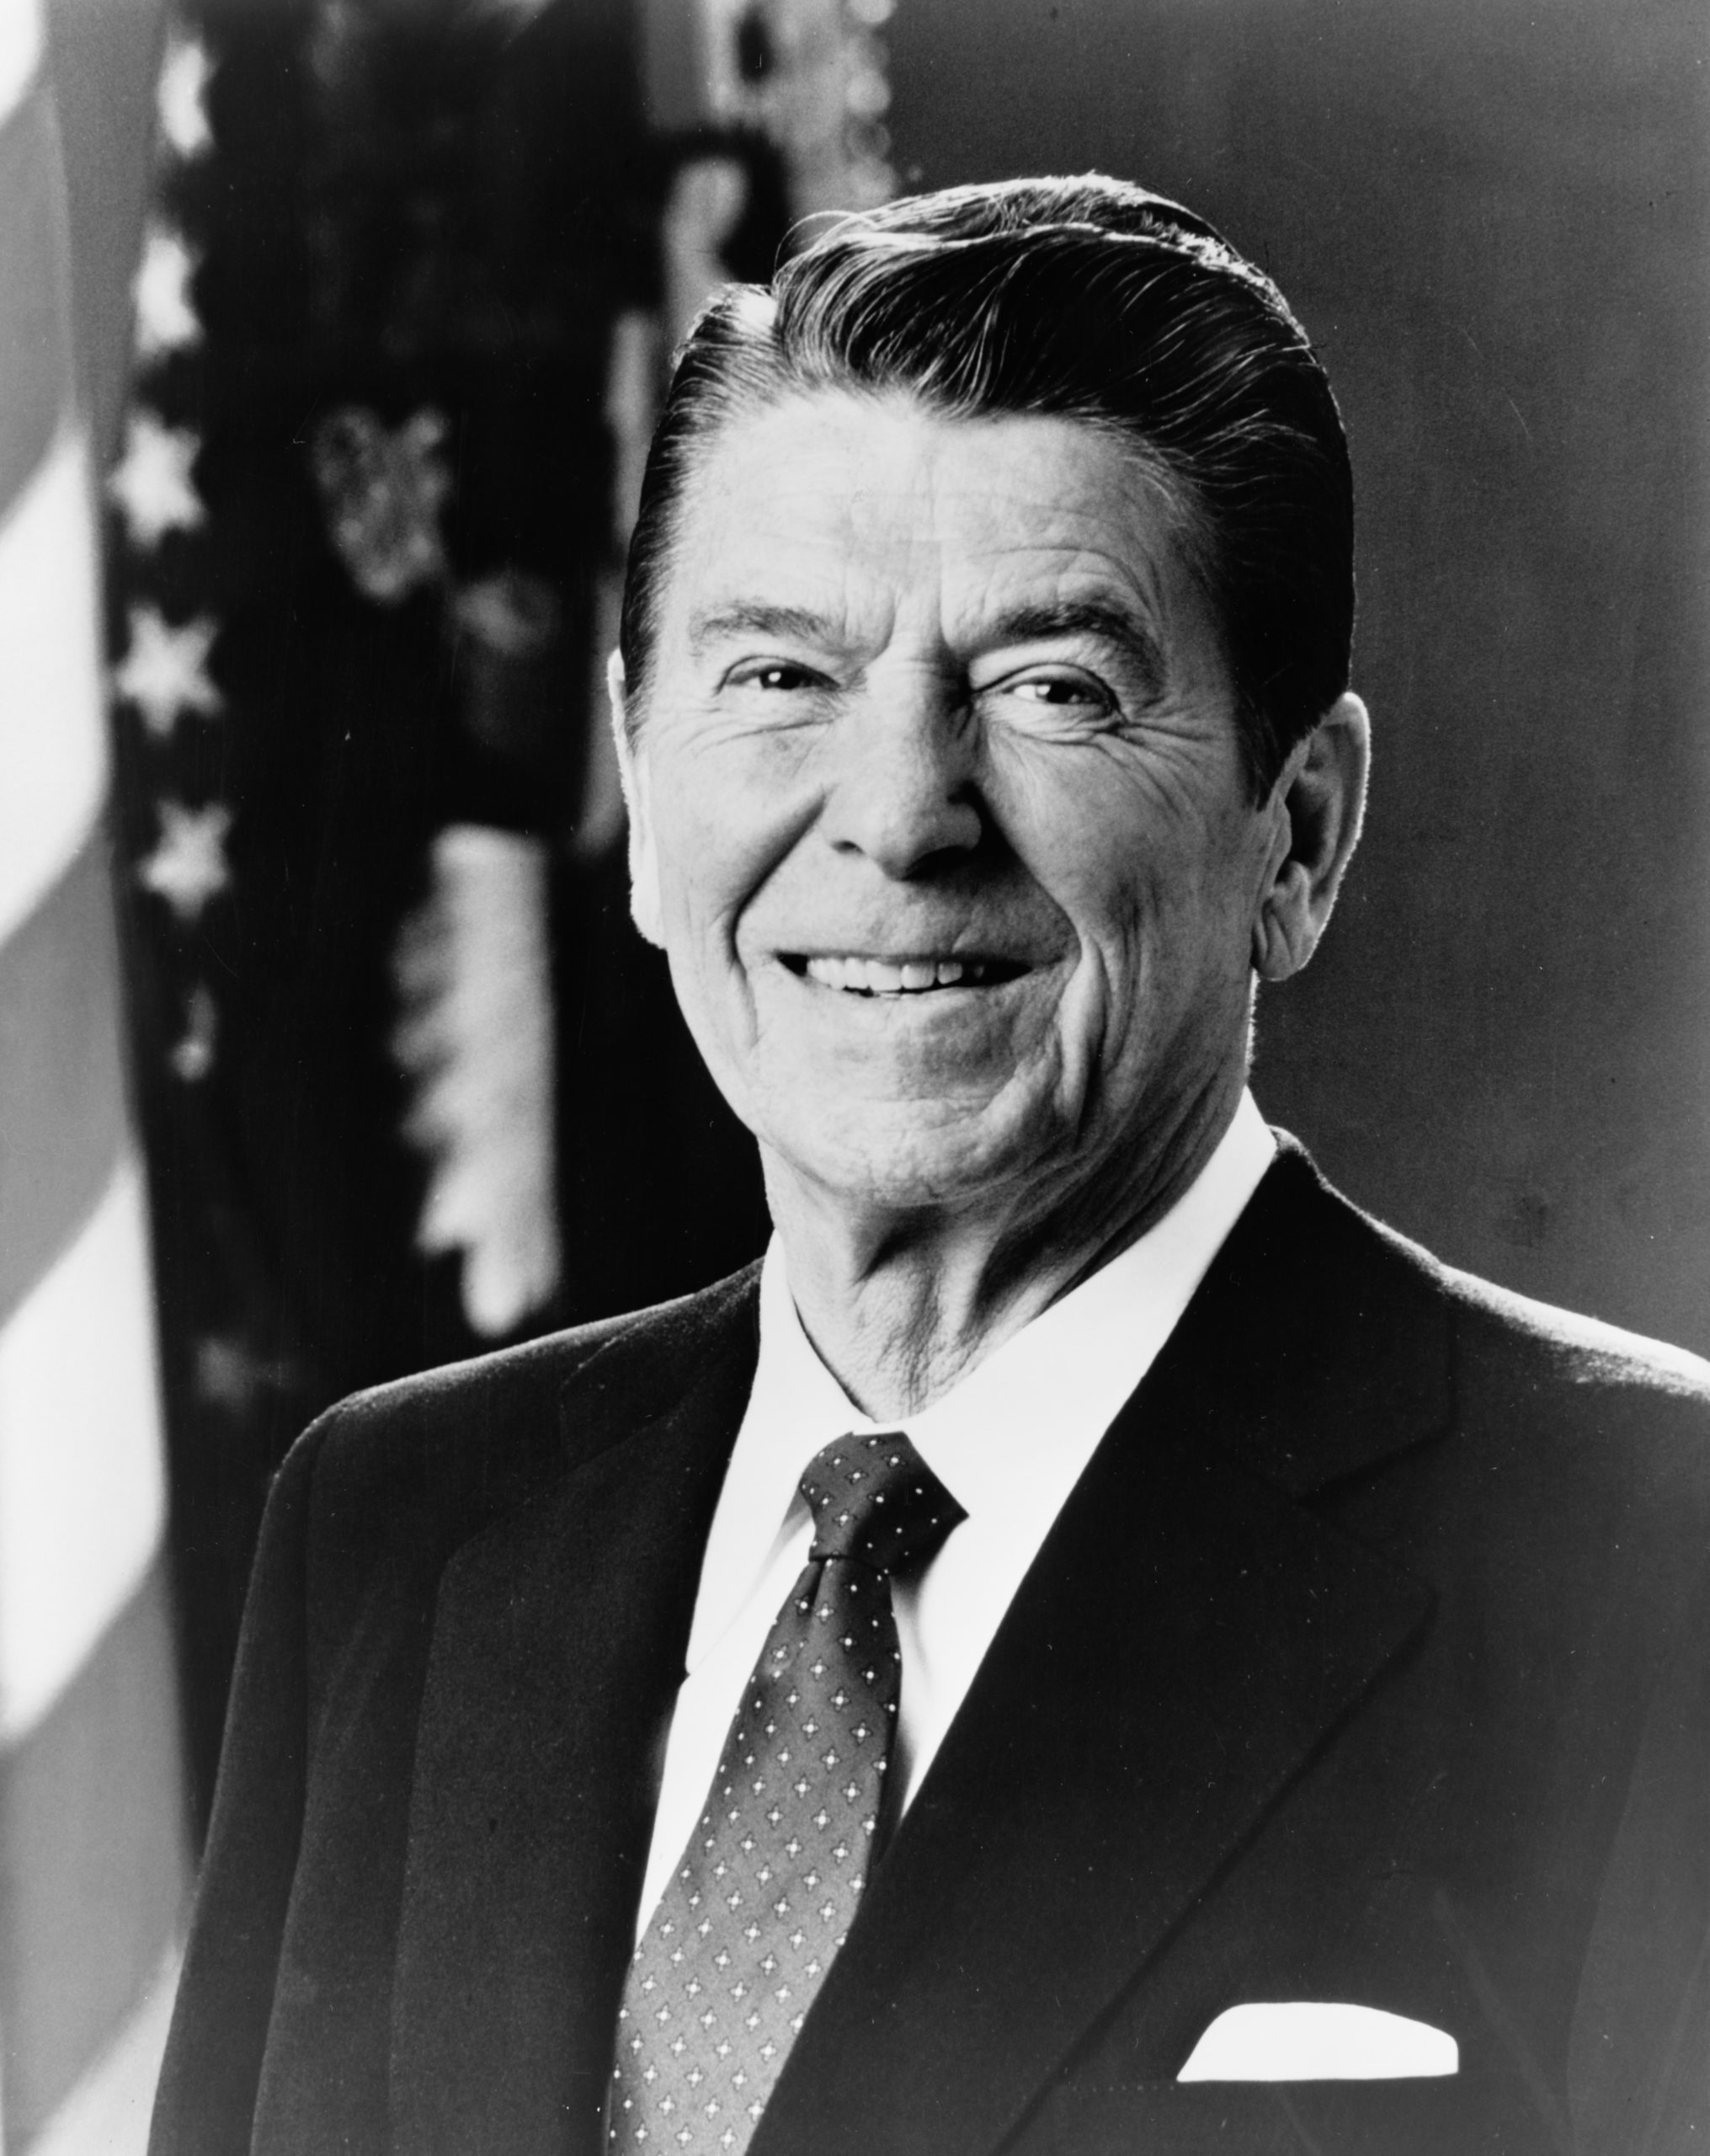 Ronald Reagan - Photo from library-of-congress-2hAb4ChULcA-unsplash